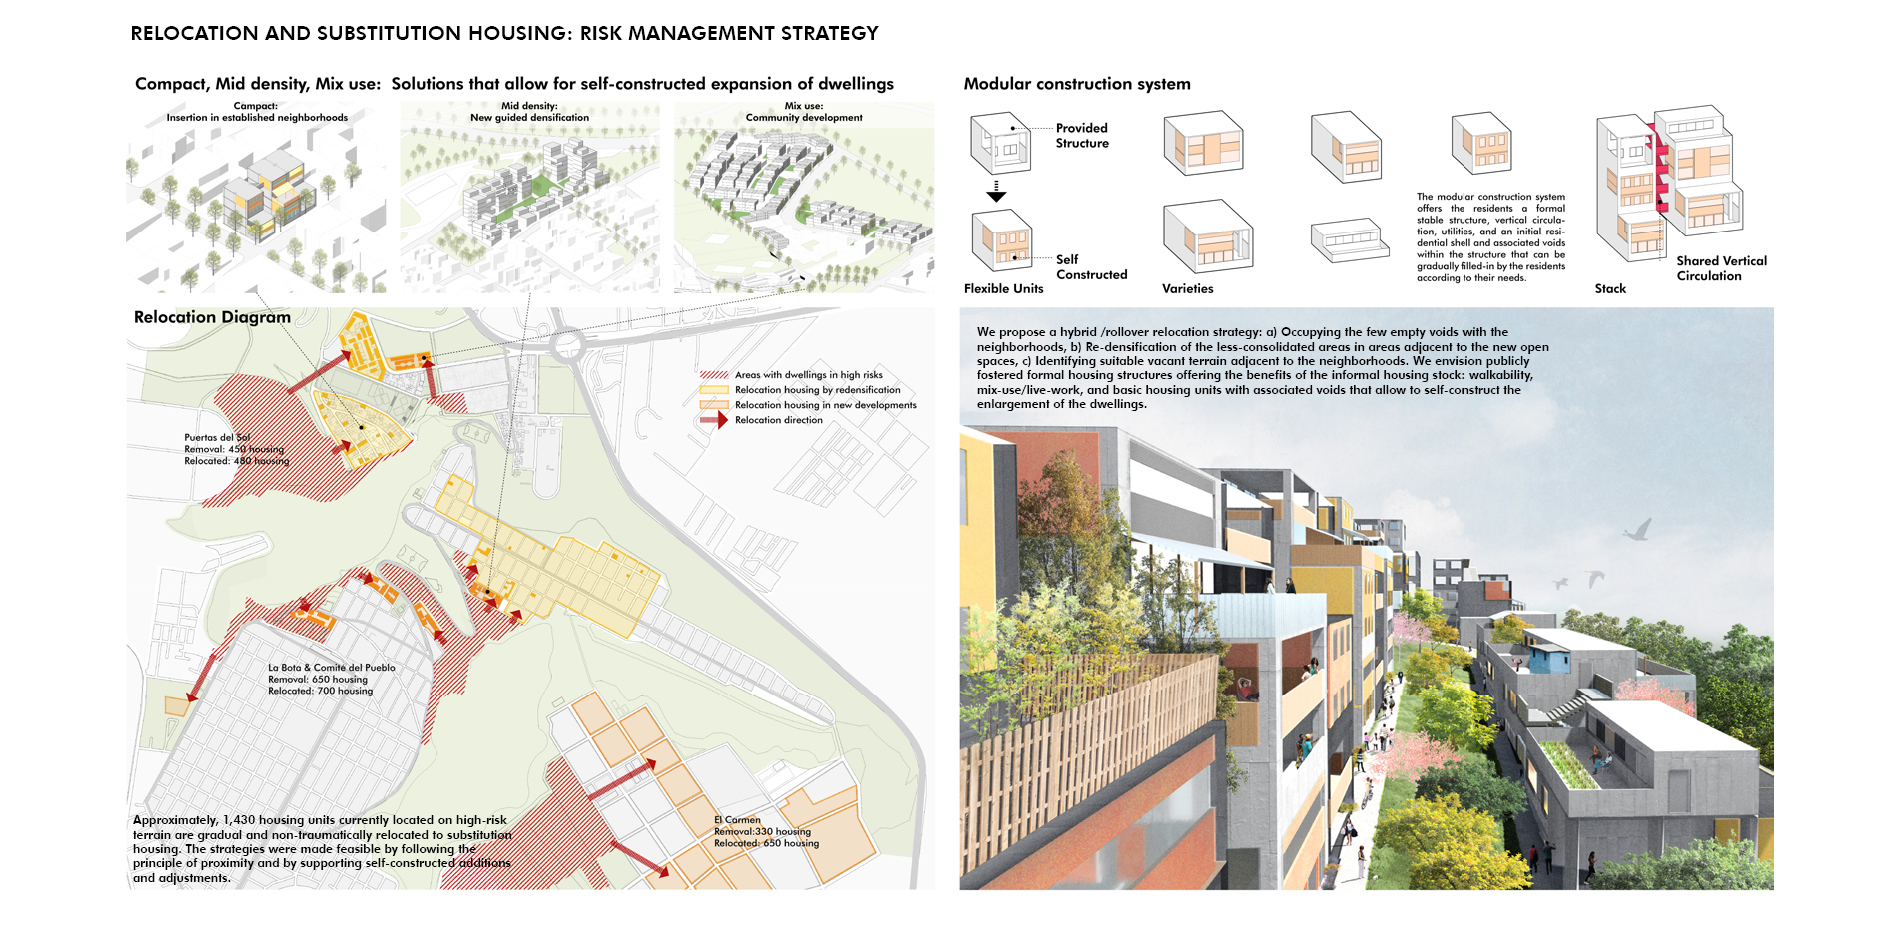 Relocation and Substitution Housing: Risk Management Strategy